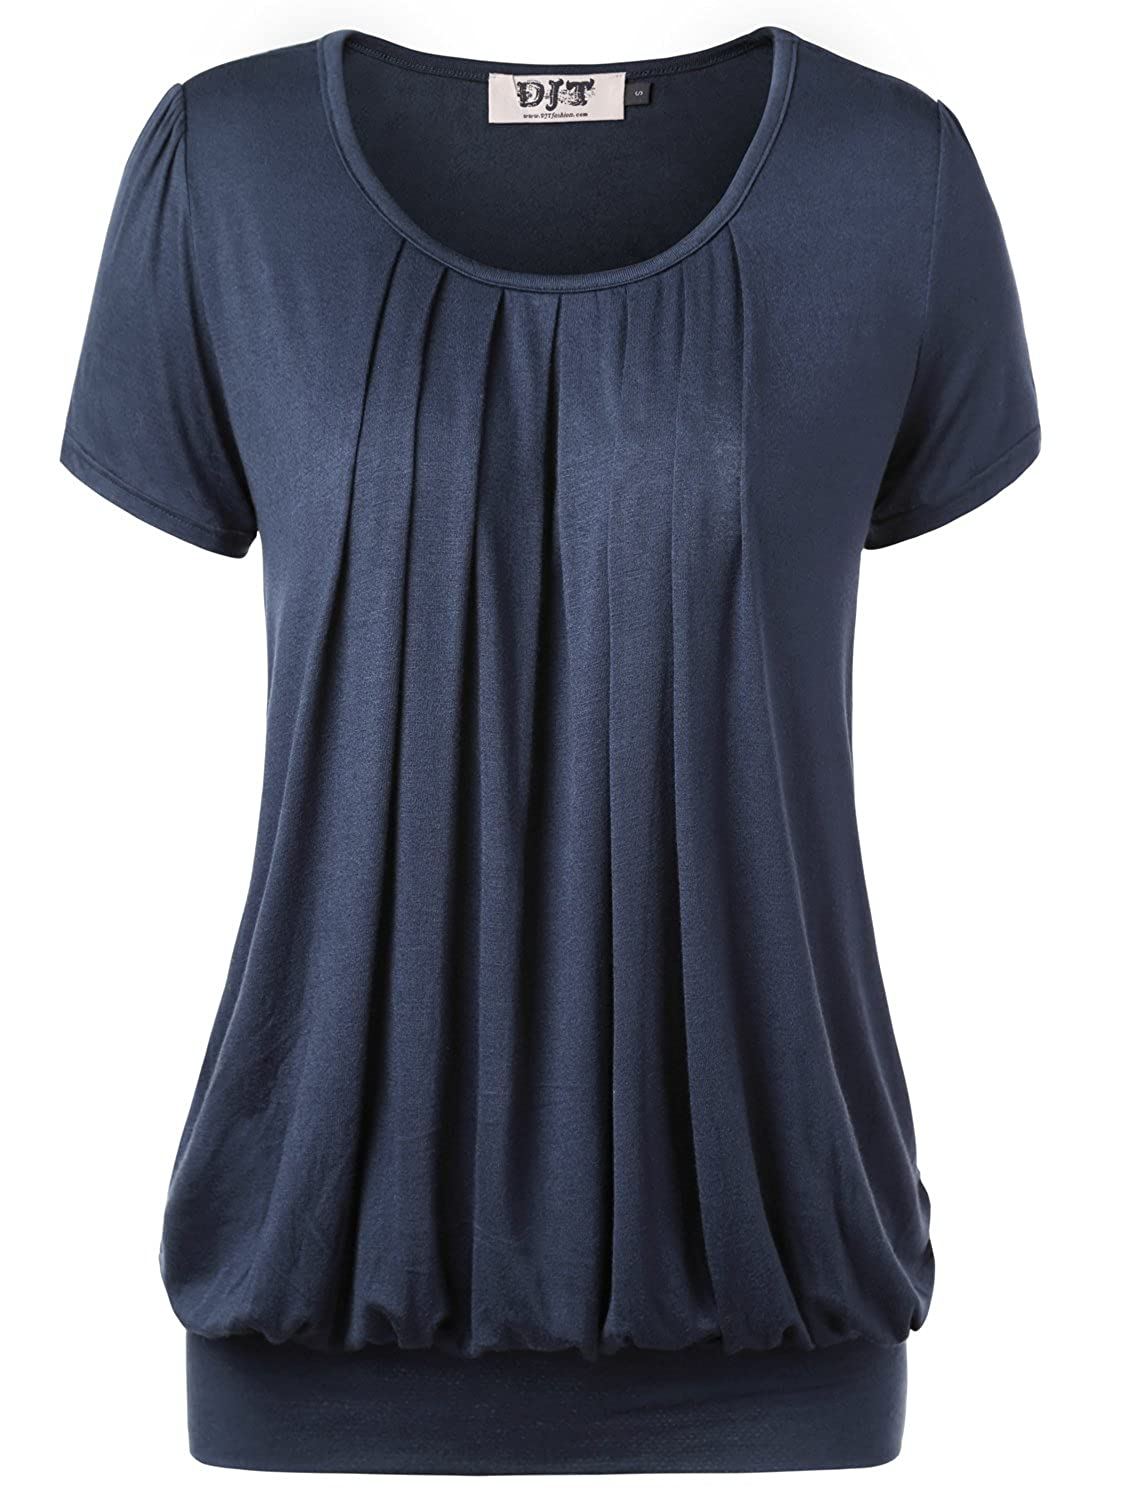 Navy DJT Womens Short Sleeve Pleated Front Blouse Tunic Top